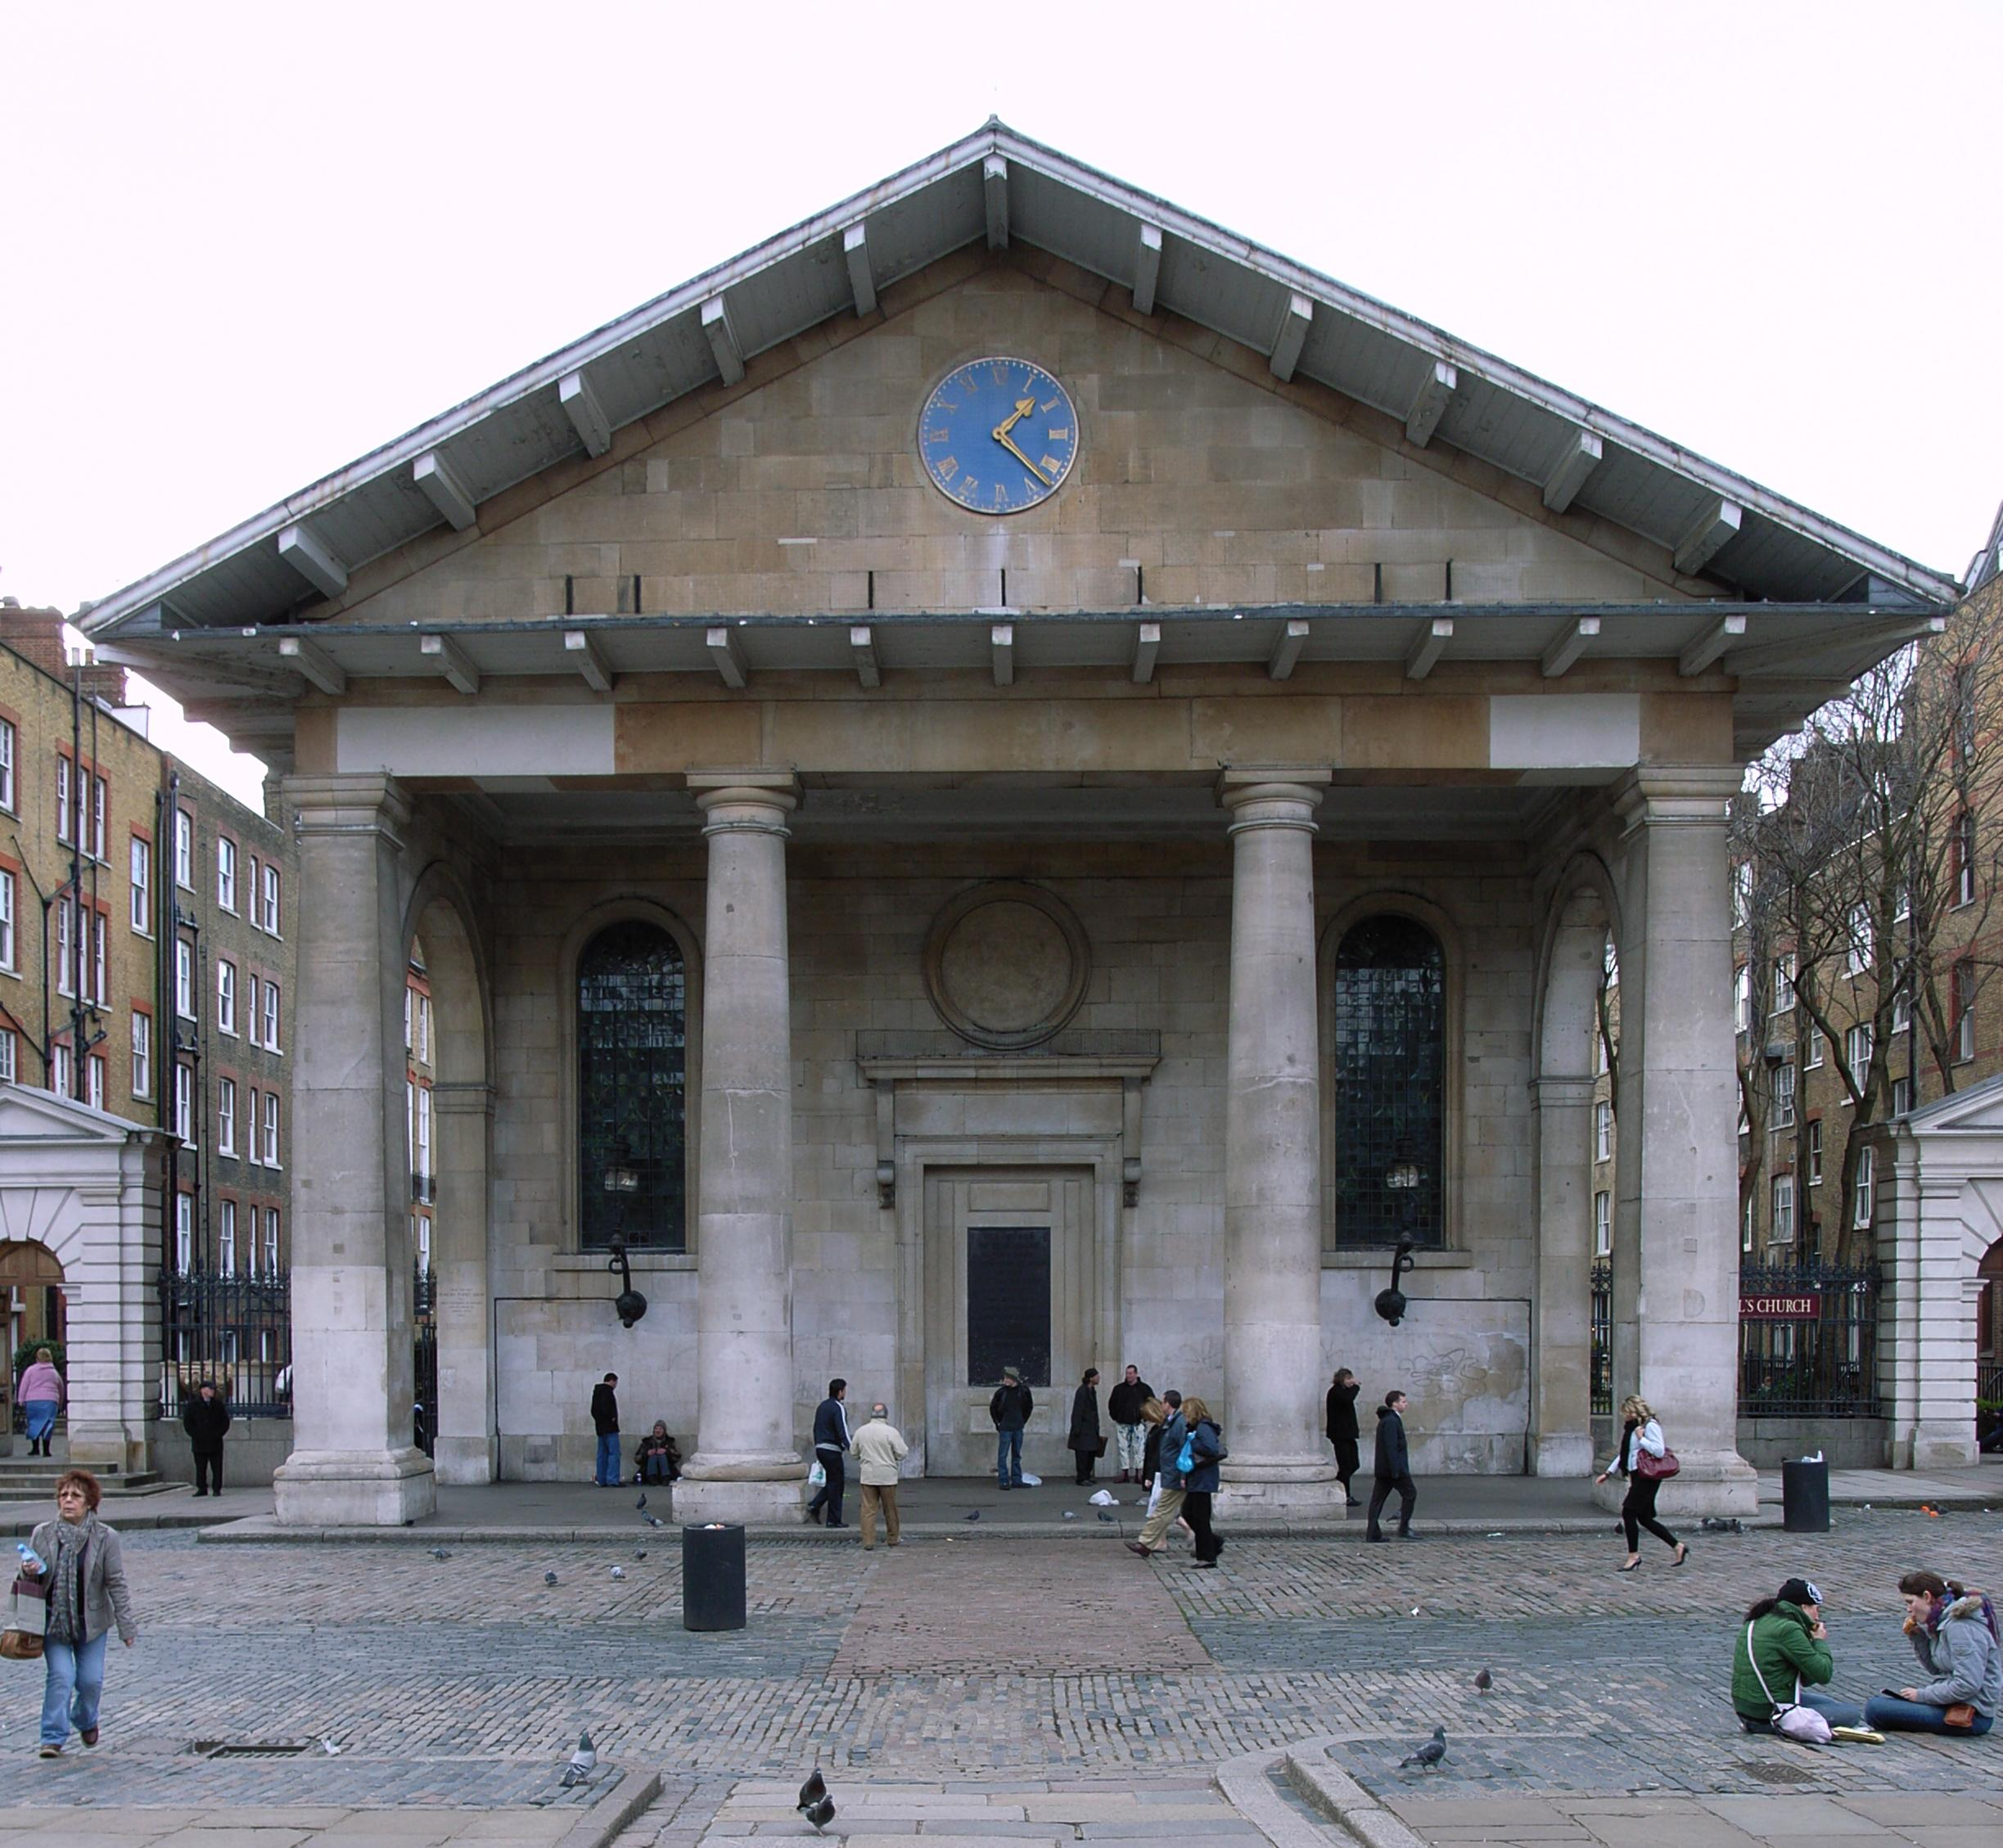 St Paul's Church, Covent Garden